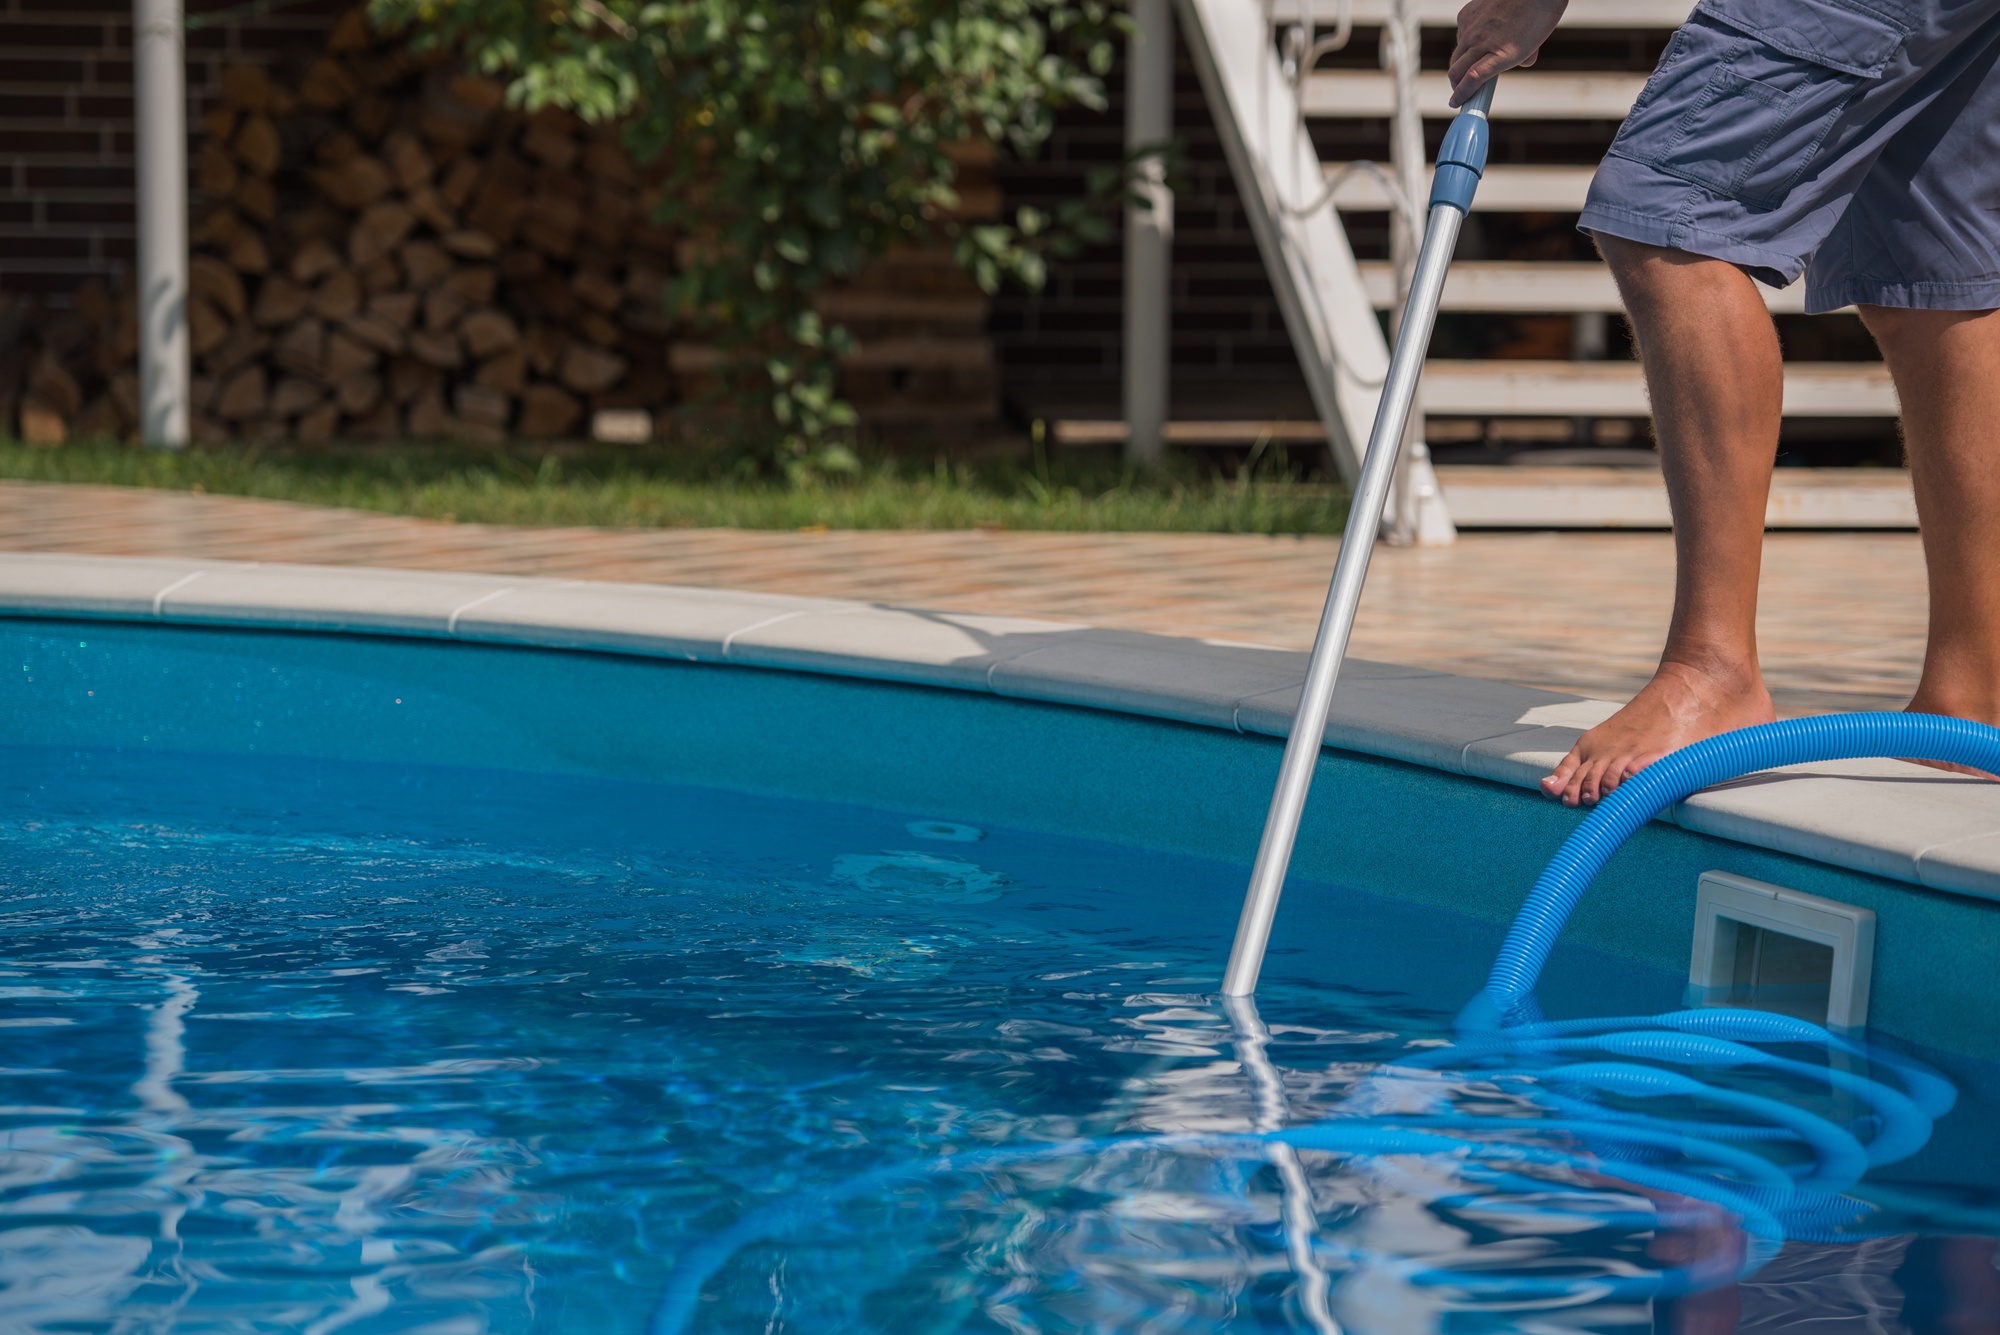 Seasonal Pool Care: A Guide on Taking Care of a Pool Year Round